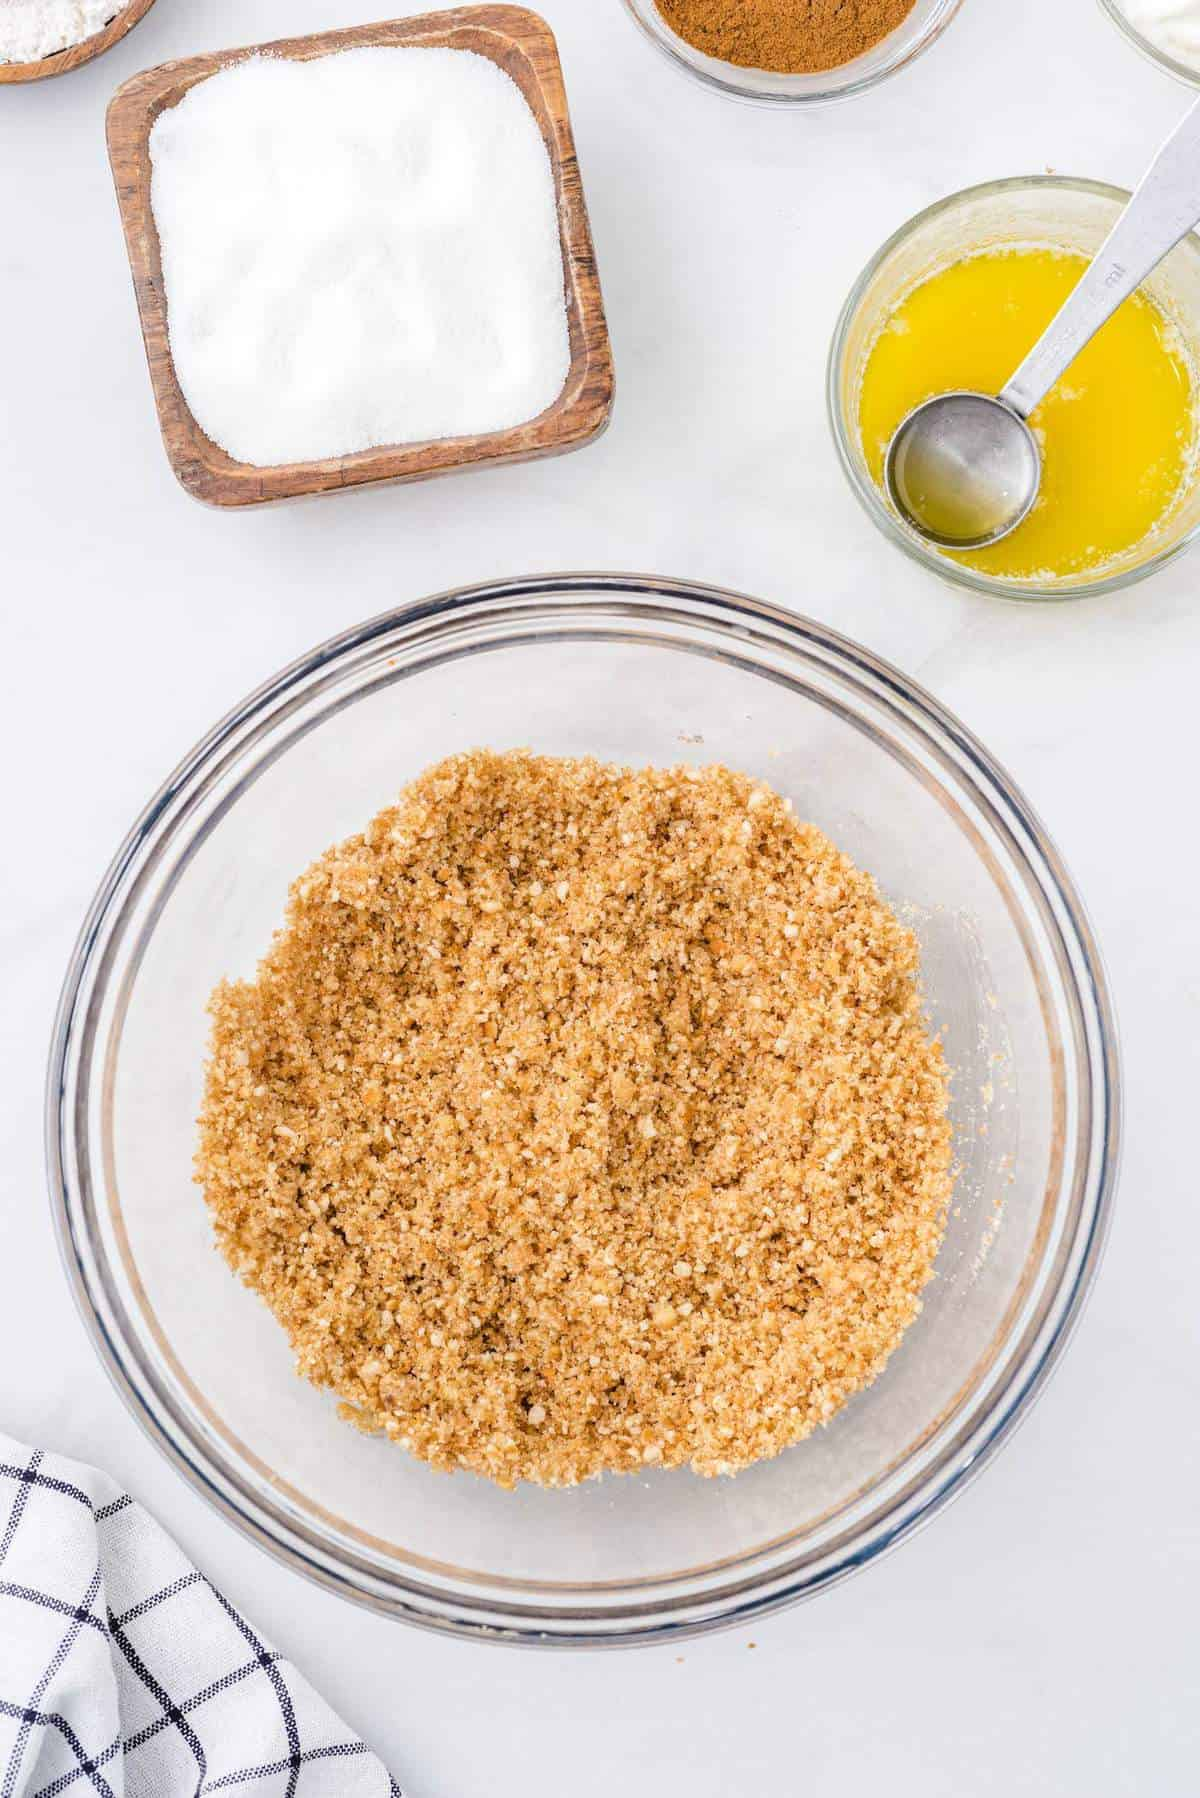 wafer crumbs, butter, sugar, and cinnamon mixed in a bowl